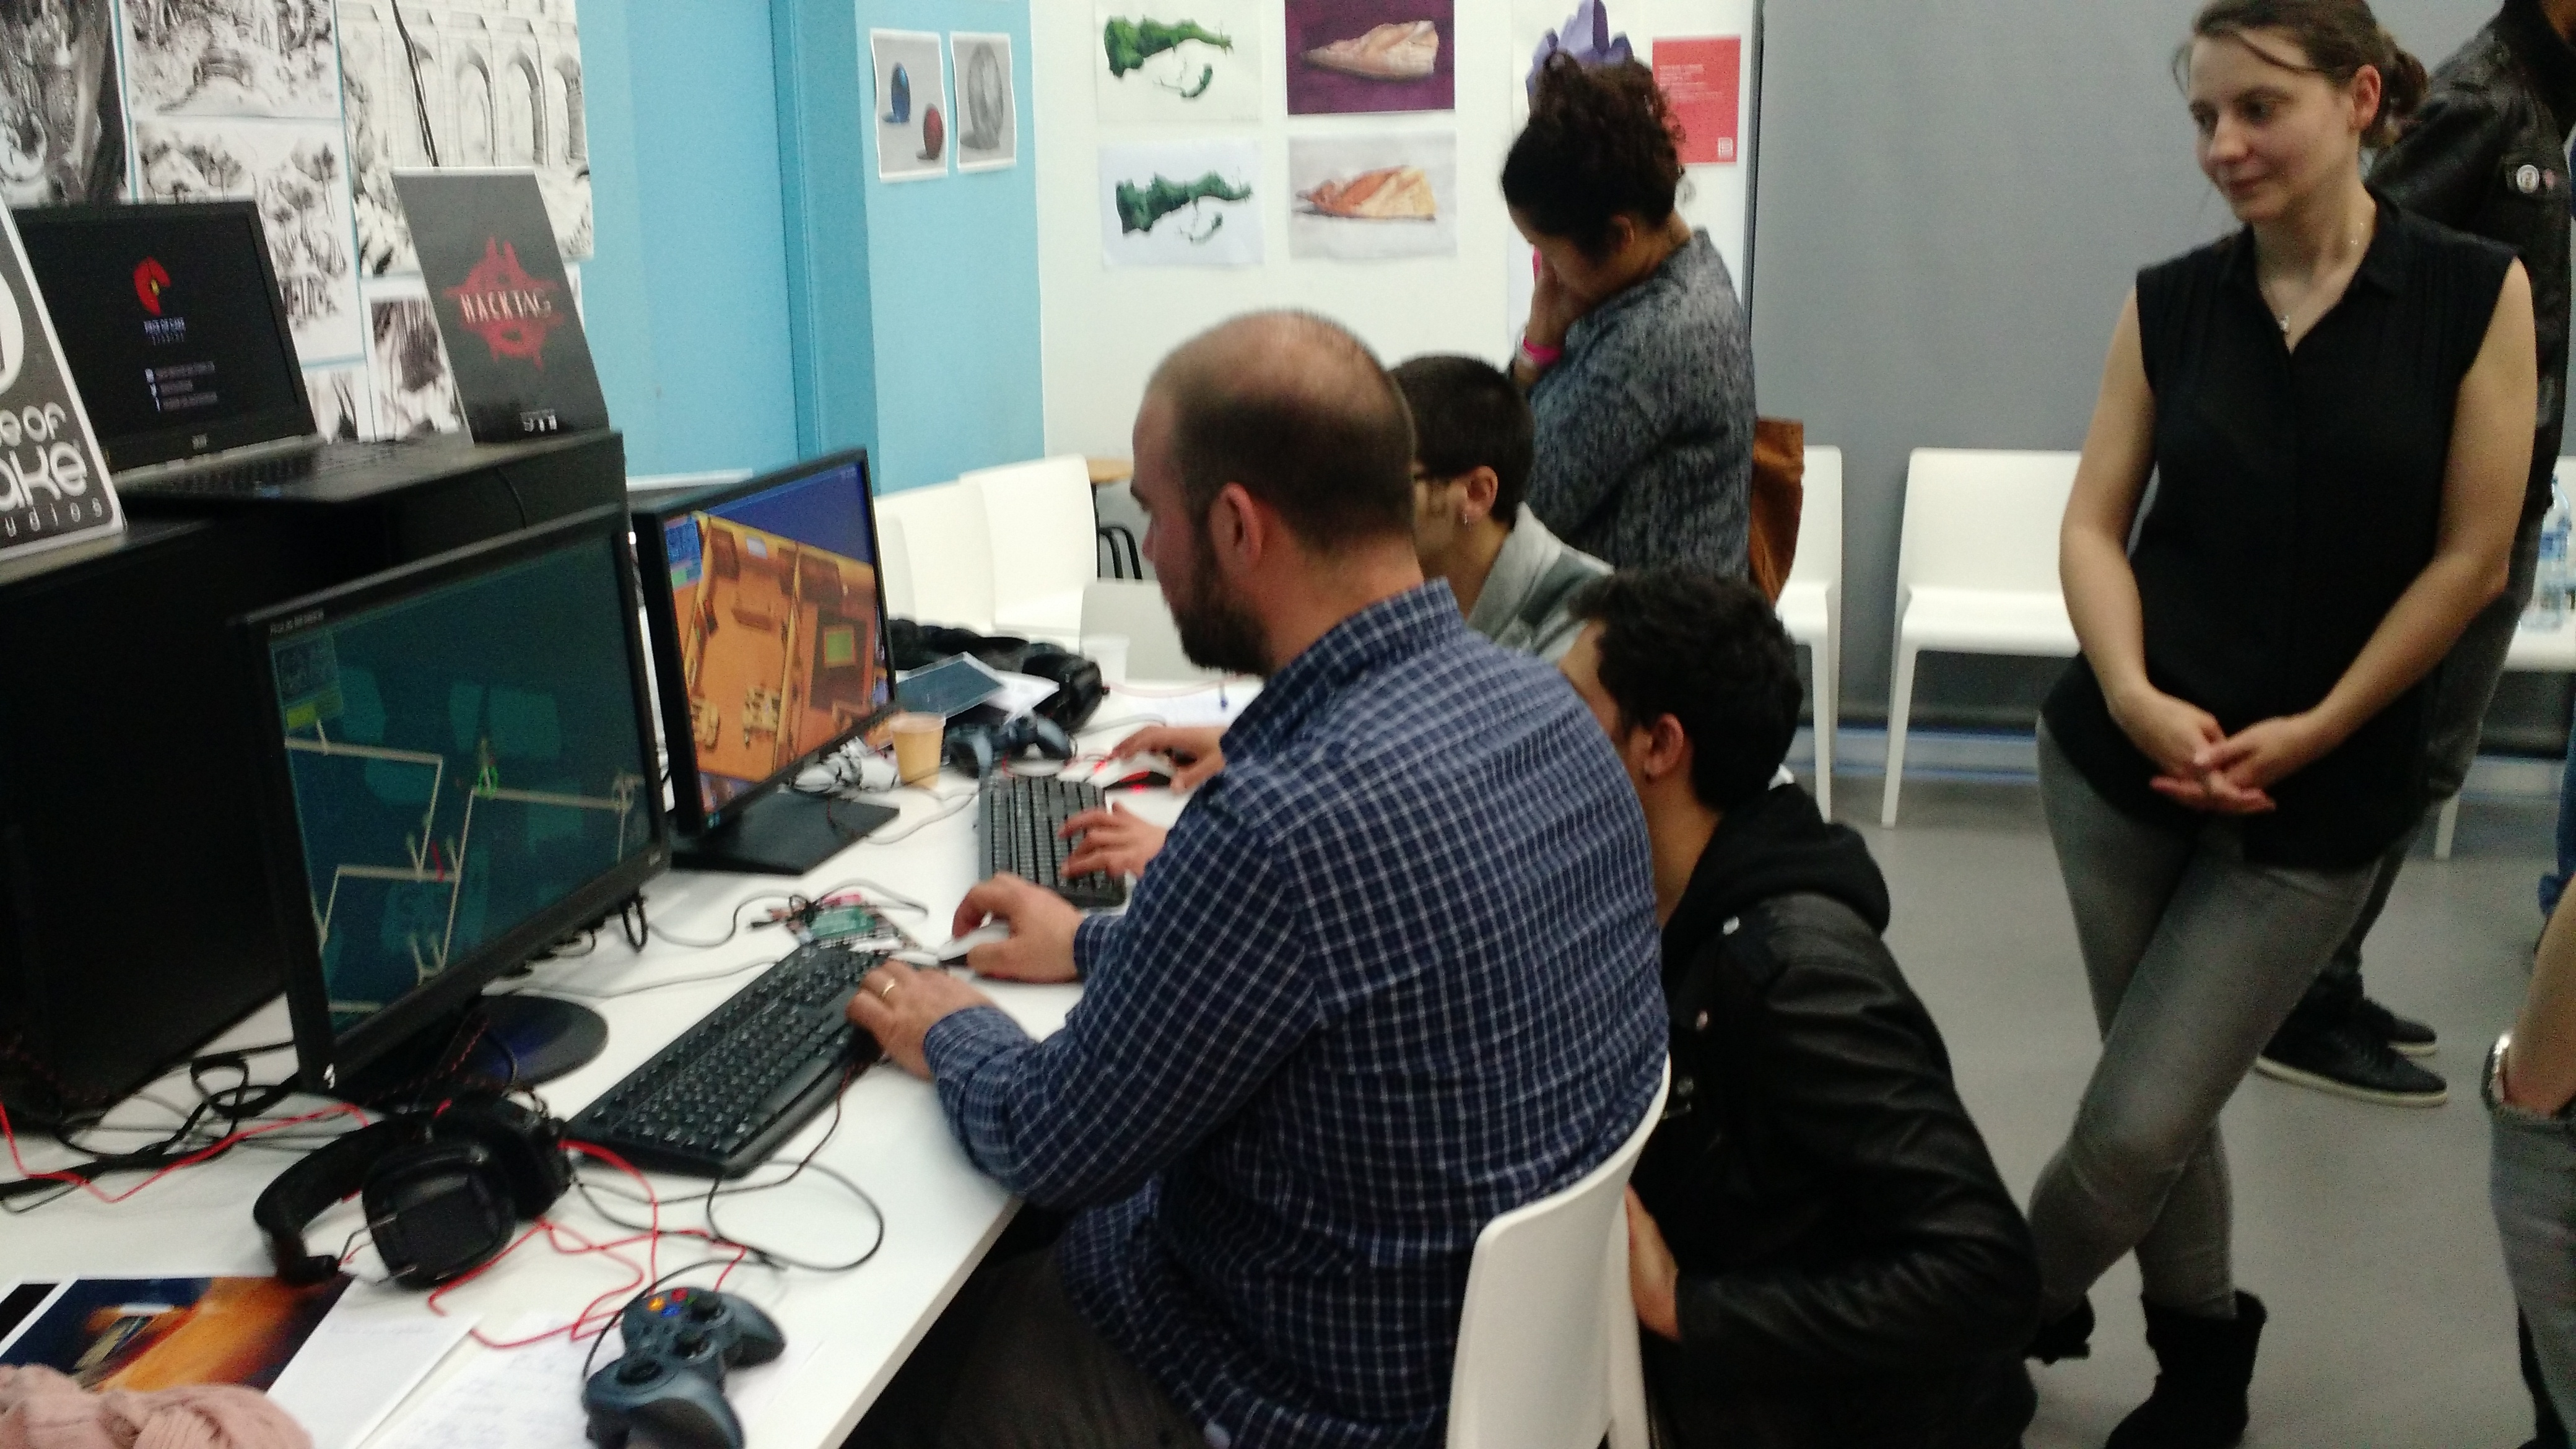 IGP6-indie game event - Hacktag booth.